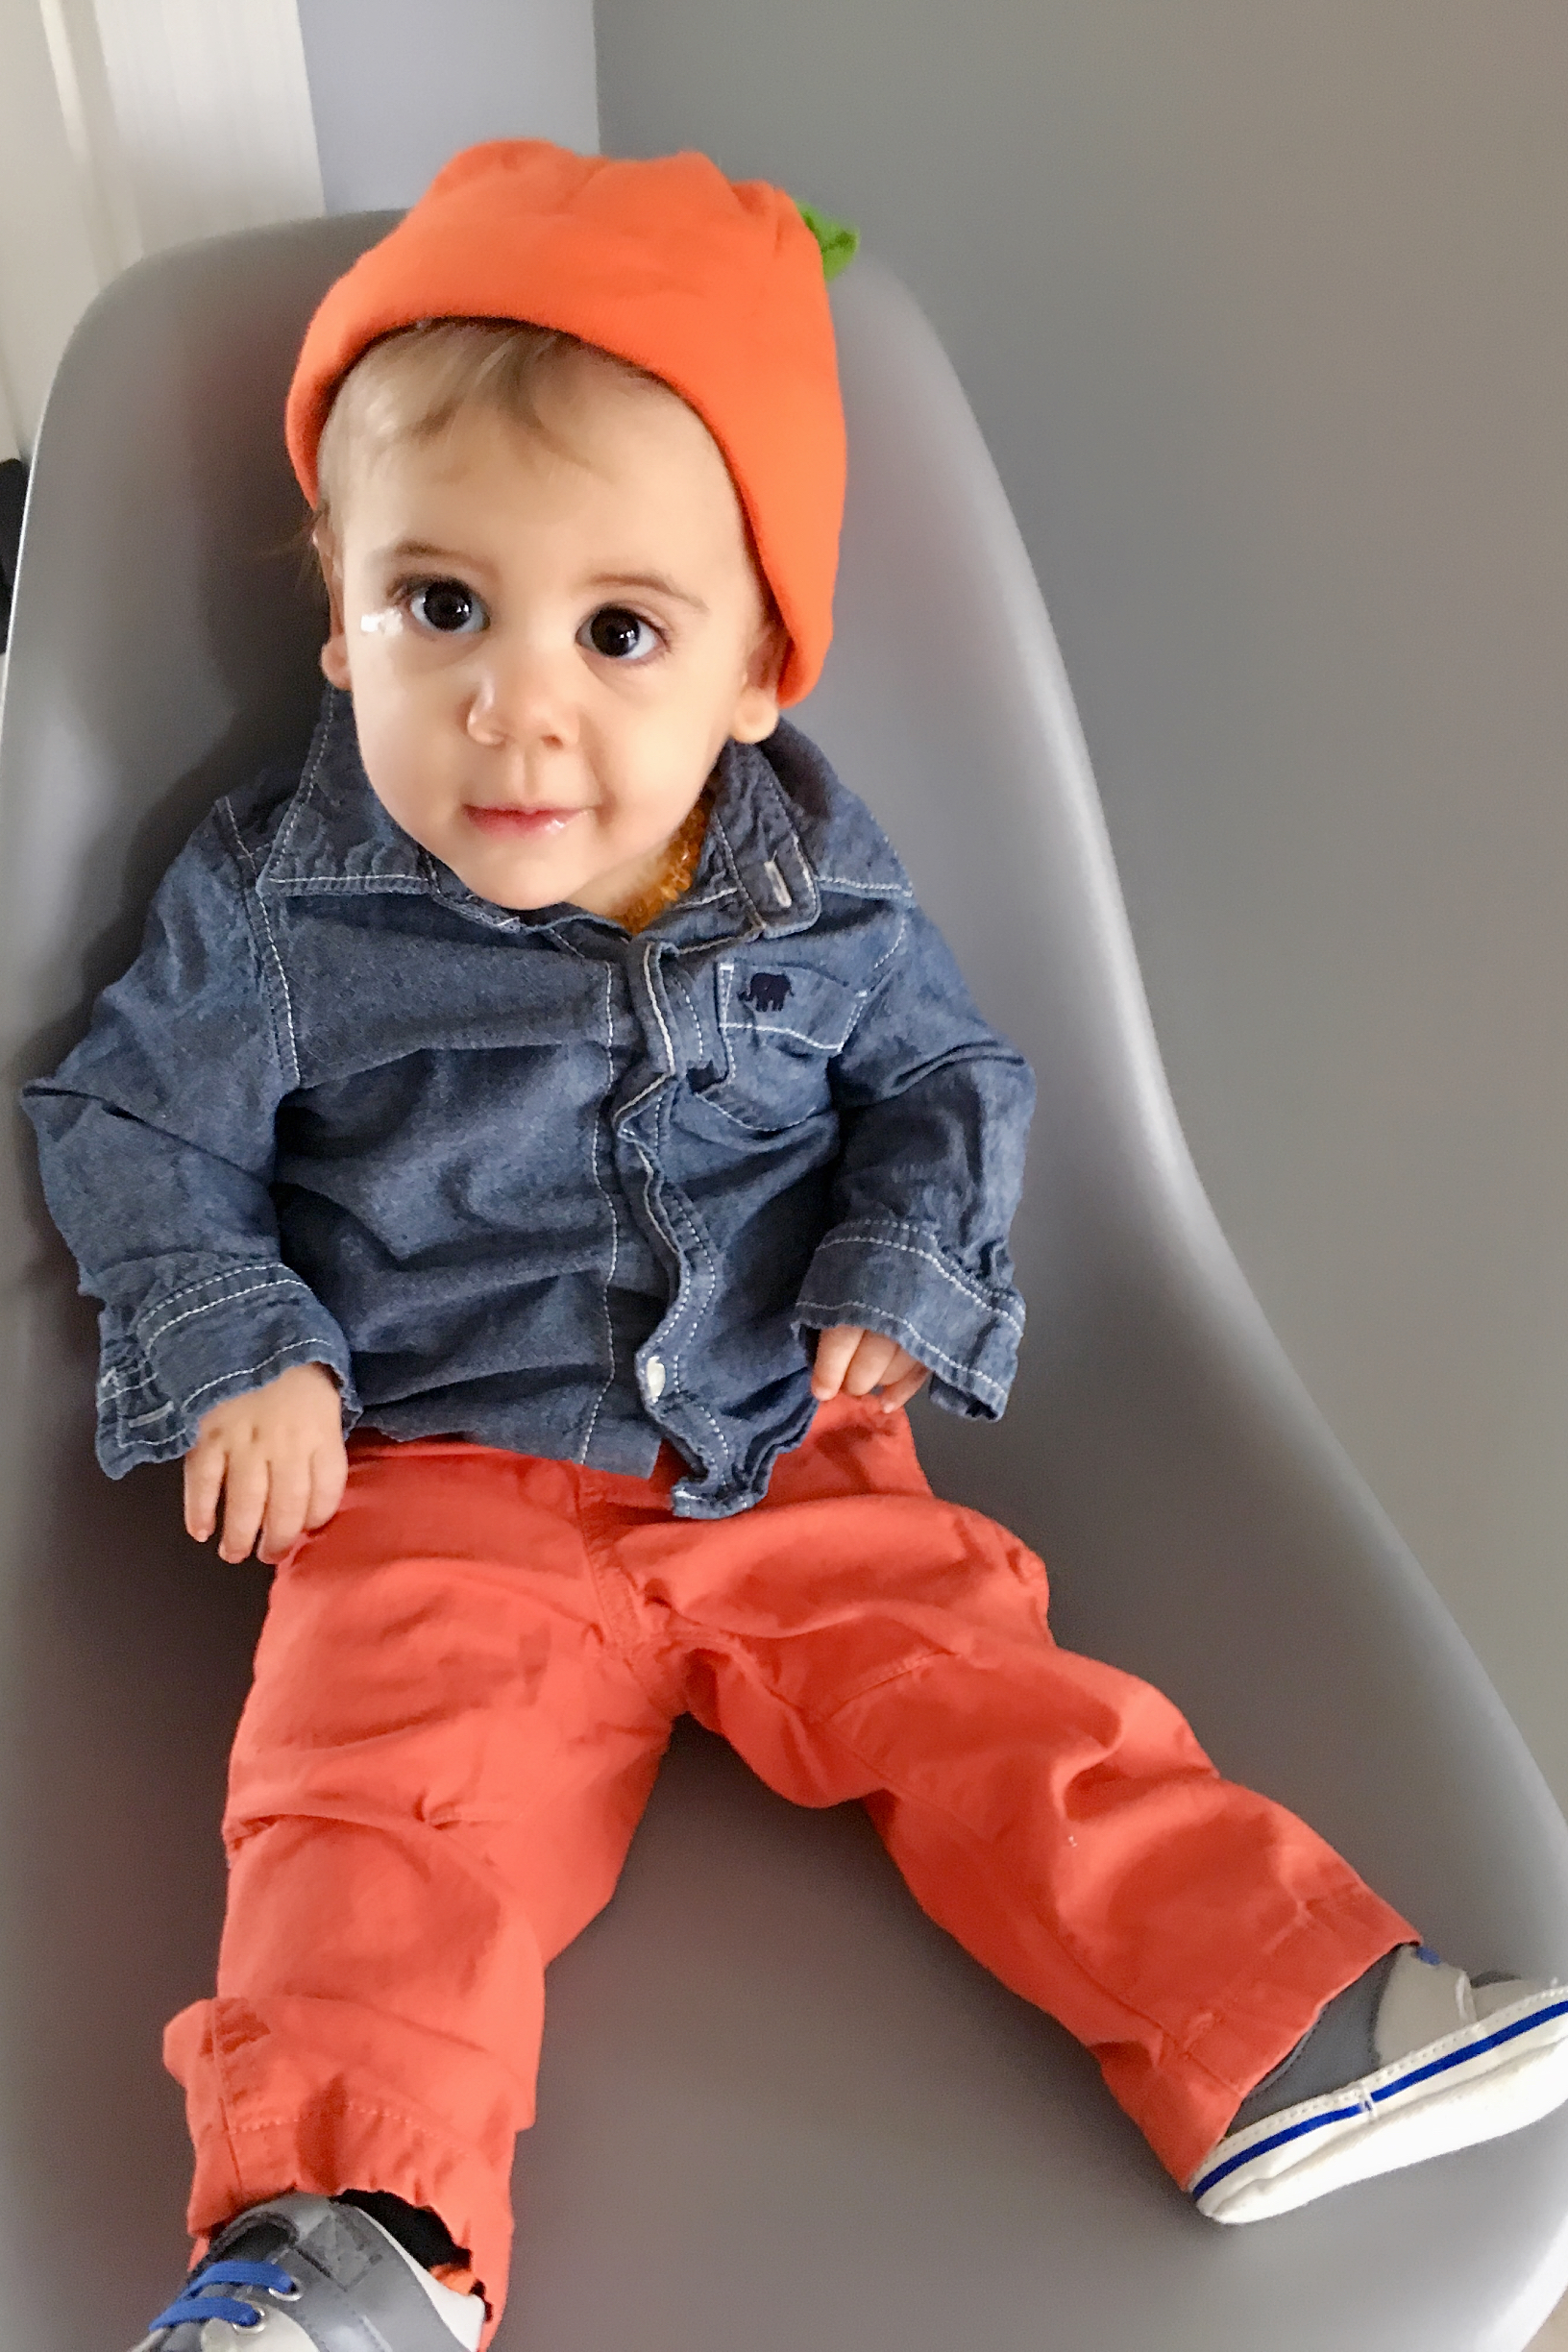 - We got a lot of wear out of this pumpkin hat from Old Navy. It was great to have this for Fall activities like pumpkin picking and apple picking! It was always a hit. His orange pants and denim shirt were hand me downs from big brother.